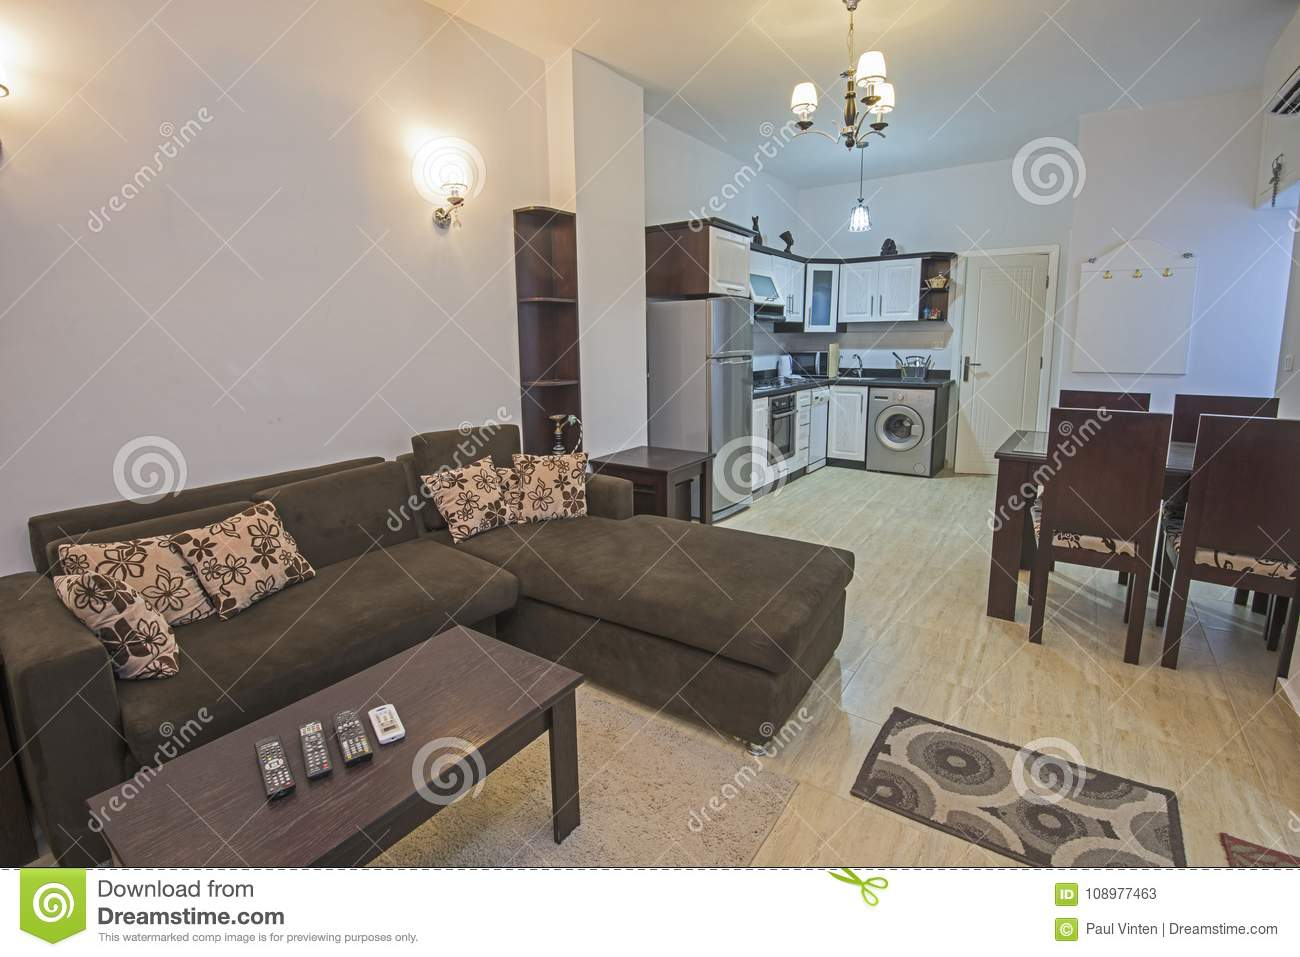 living room open plan designs kitchen design ideas interior of an apartment show home decor with furniture and dining table